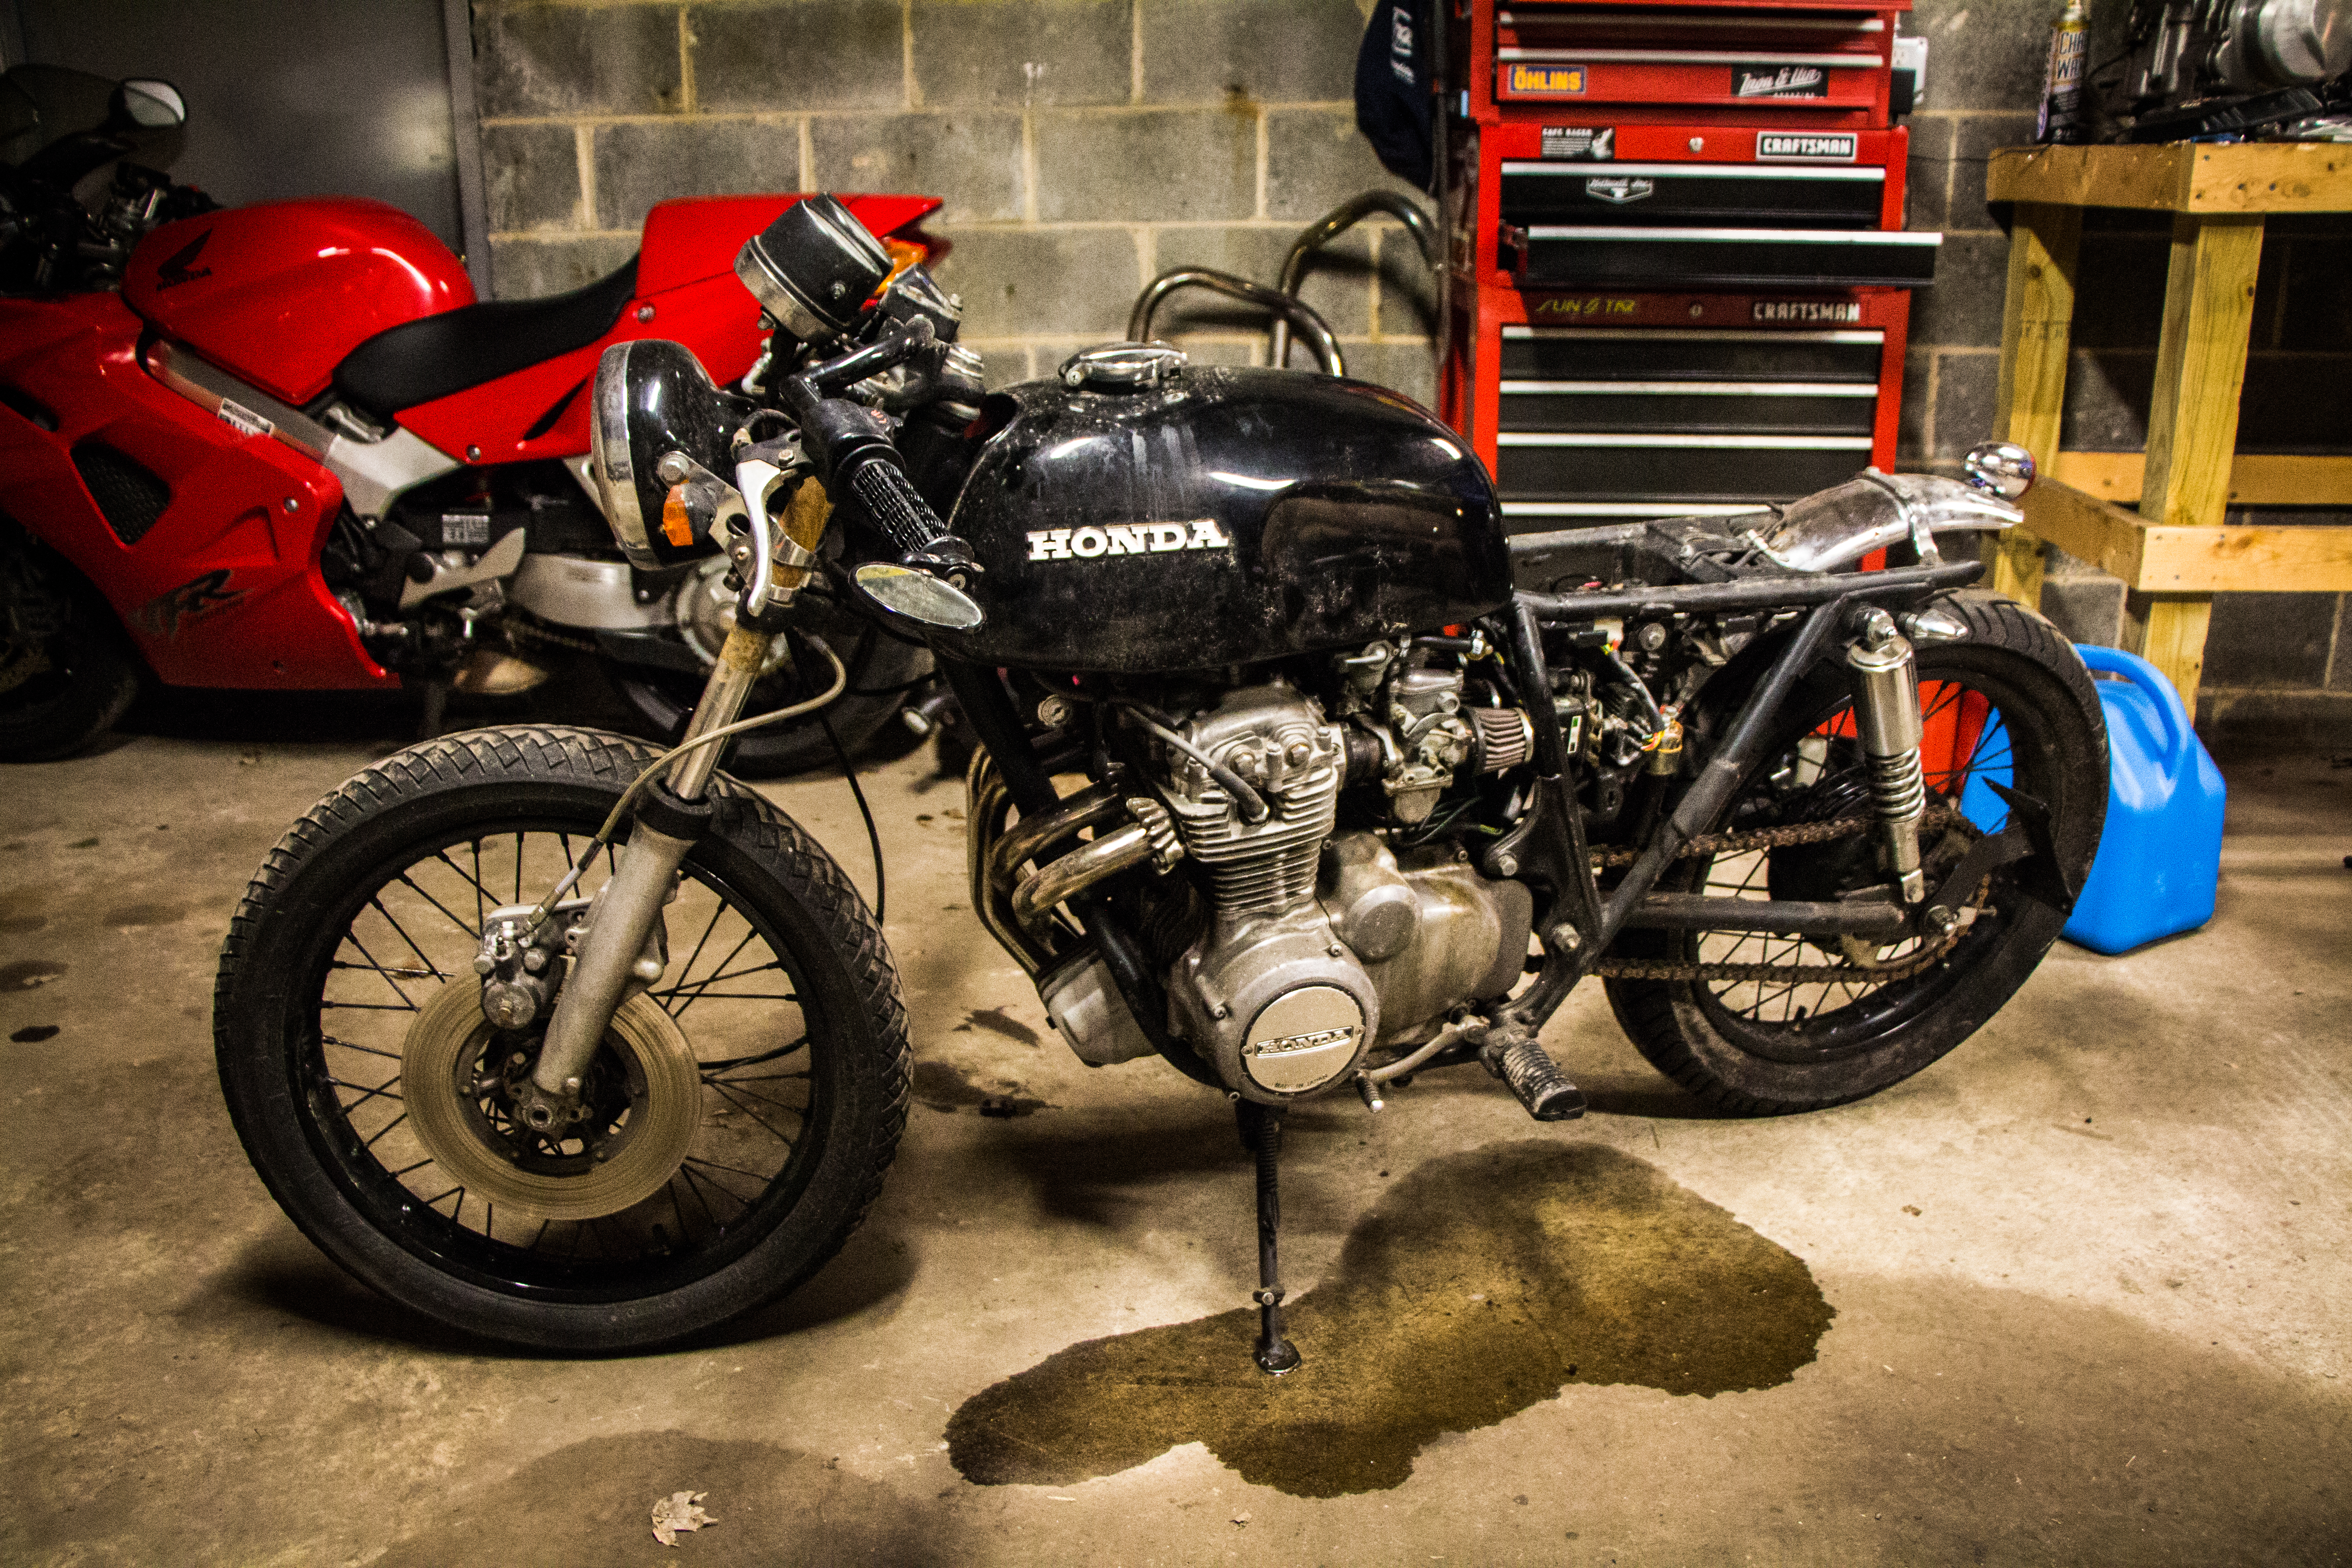 Kickstarters and beer how she got her vintage honda in my garage kickstarters and beer how she got her vintage honda in my garage revzilla thecheapjerseys Choice Image